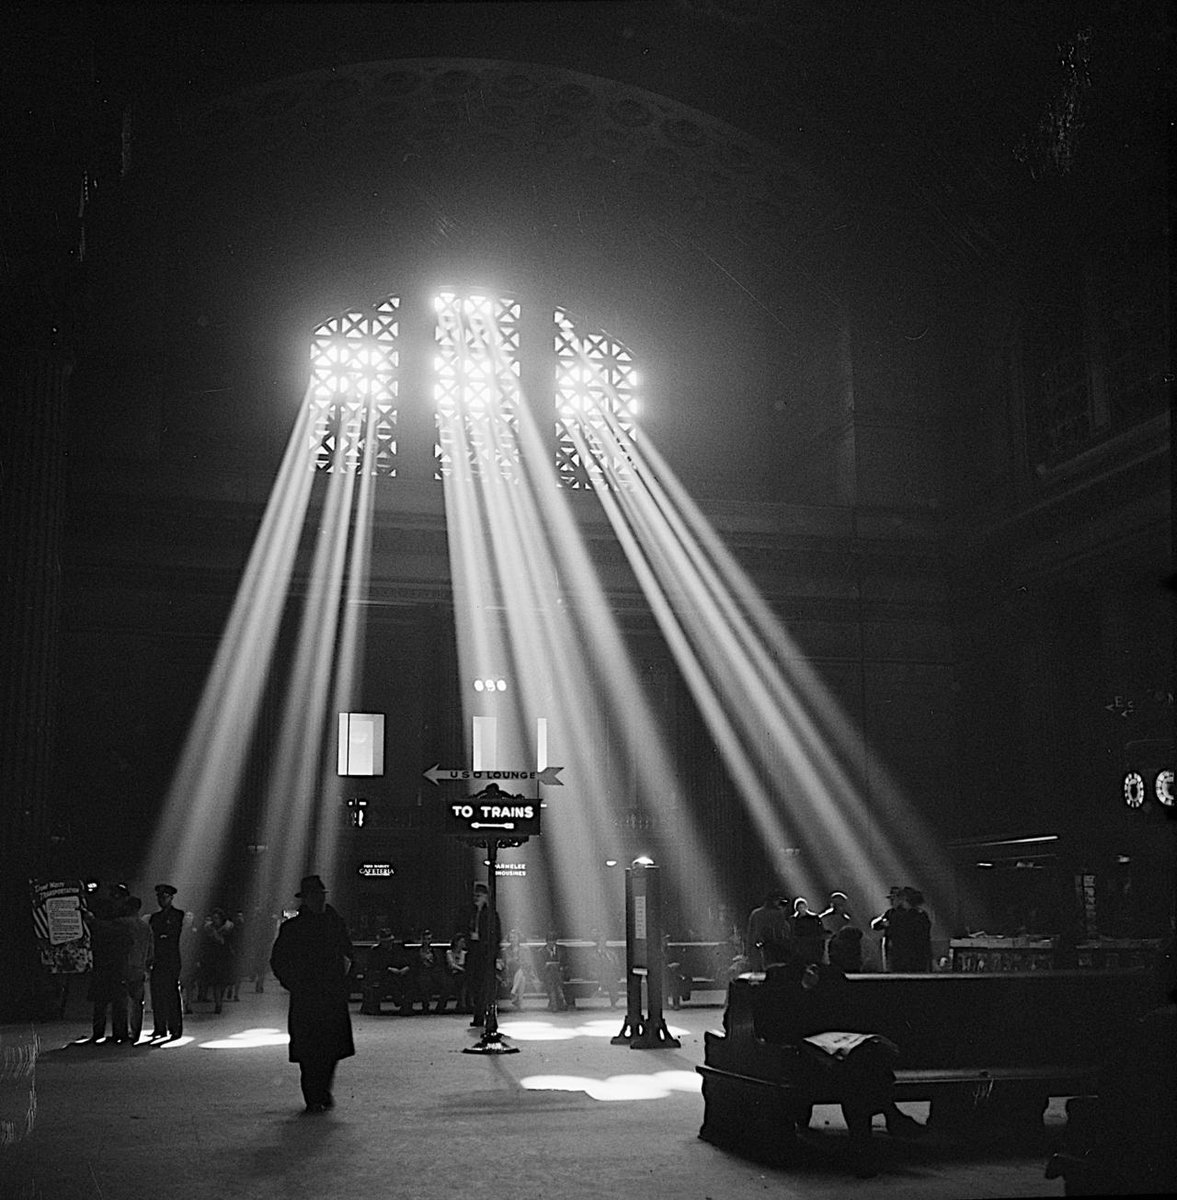 RT @kc_clancy: Chicago, Illinois. Union Station waiting room. 1943 Jack Delano https://t.co/JRnh02UzPf